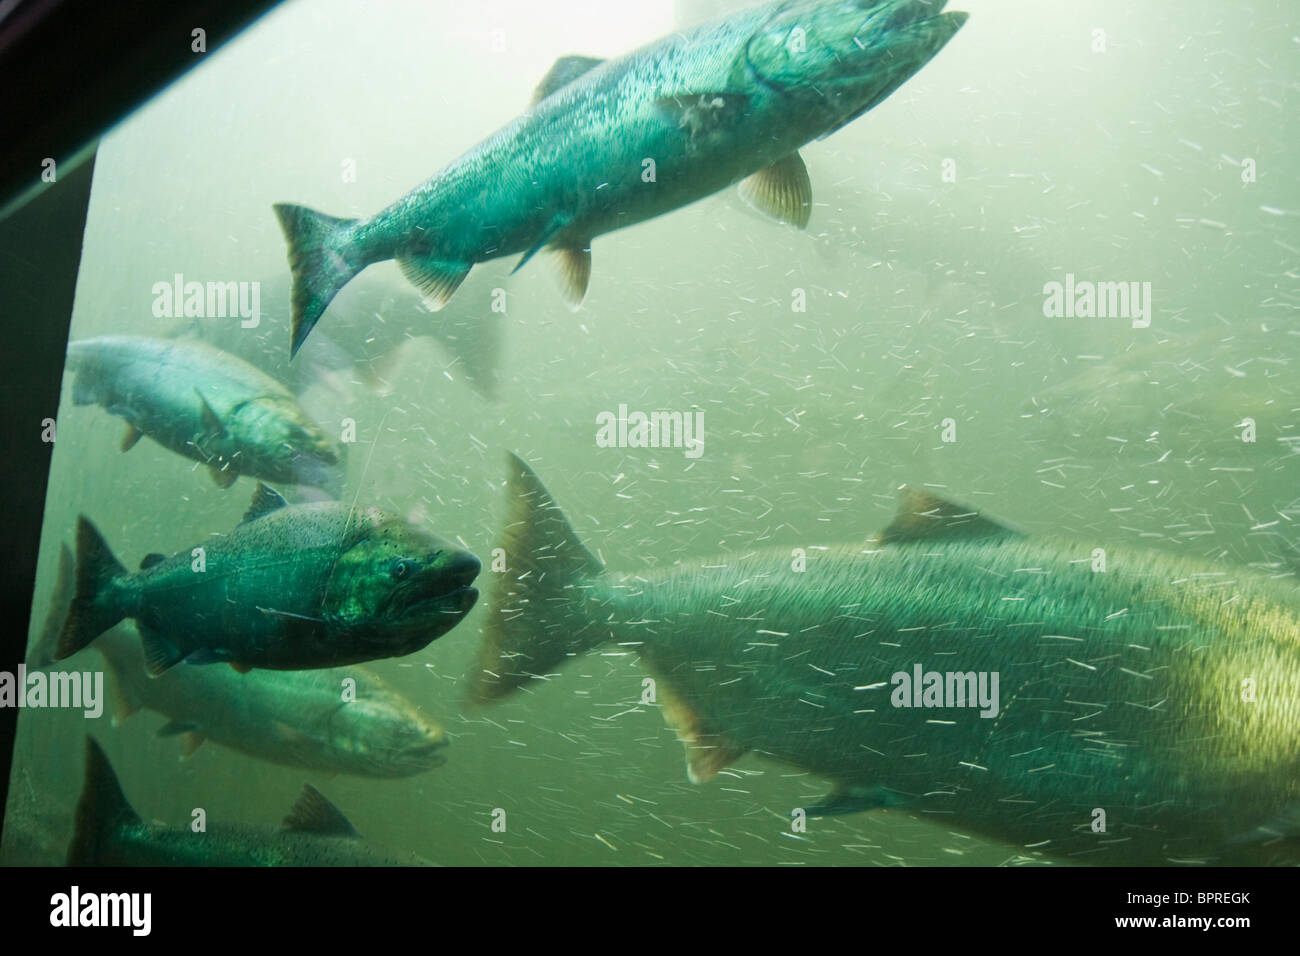 Chinook salmon in the fish ladder at the ballard for Ballard locks fish ladder